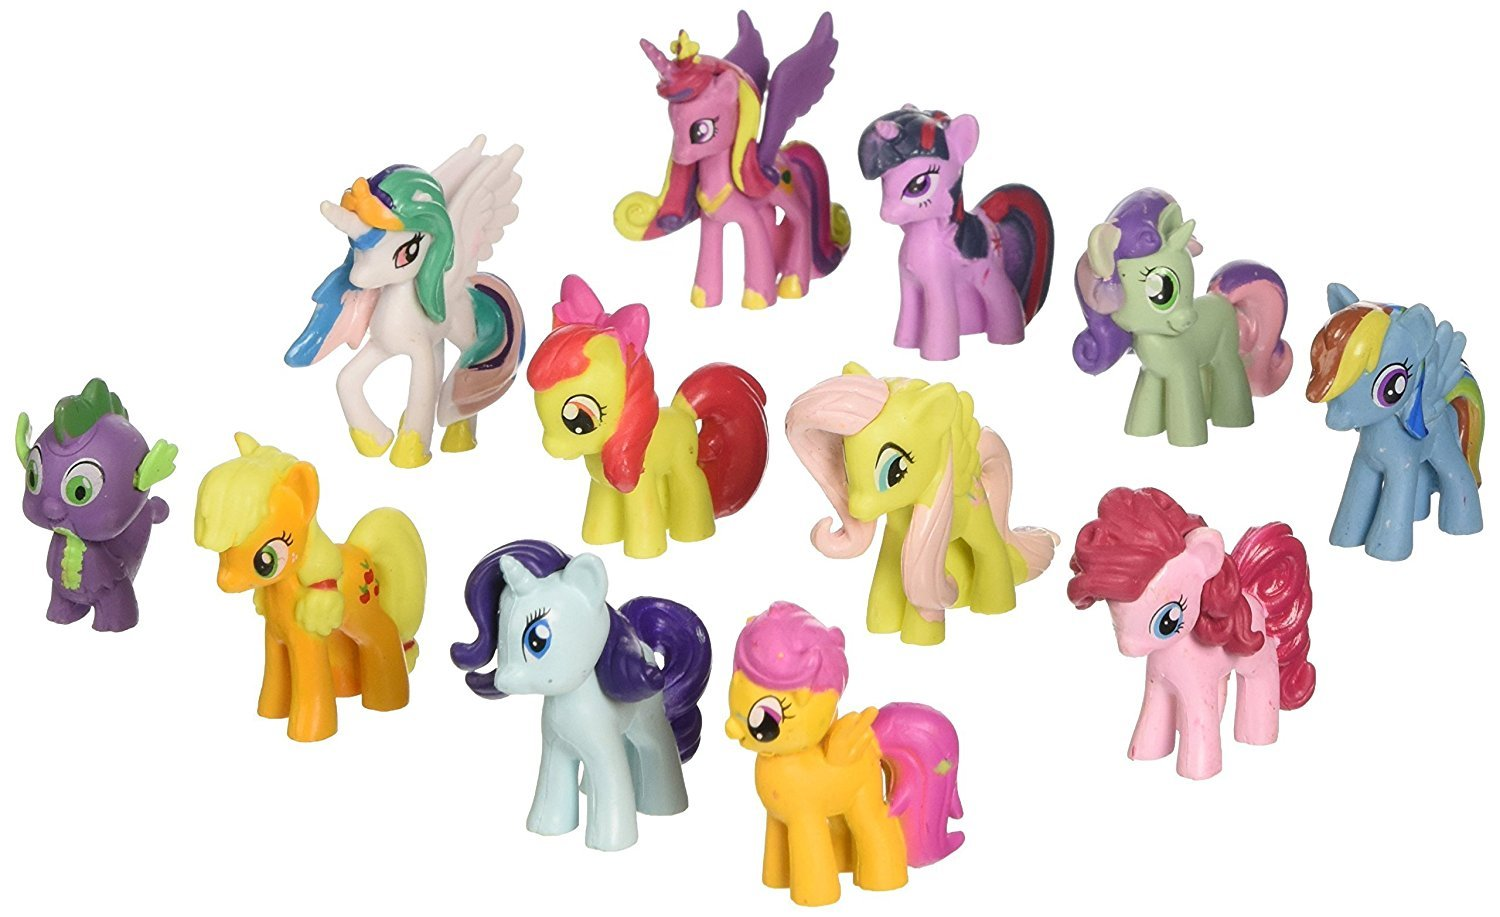 Max Fun 12pcs Pony Dolls, 1.5-2' Tall My Little Pony Figure Toys For Kids Cupcake Cake Toppers by Max Fun